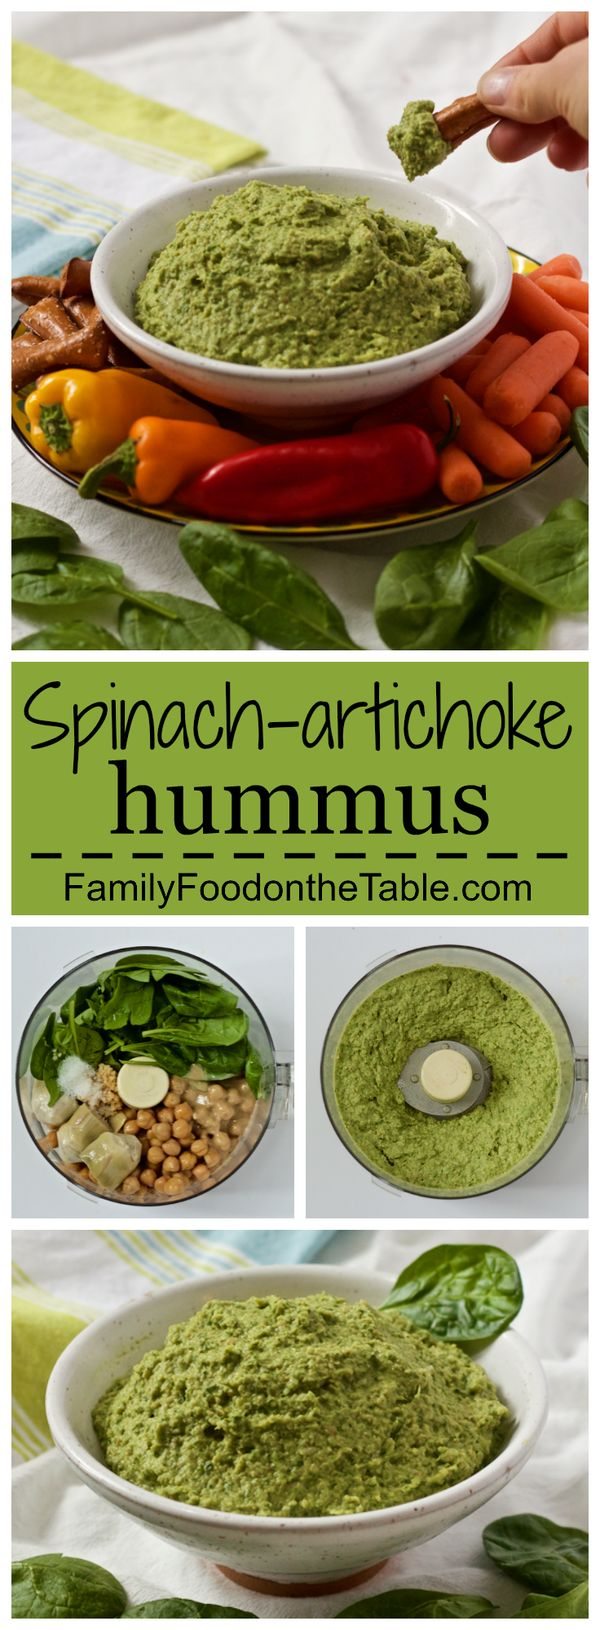 Spinach artichoke hummus - light and creamy! A great appetizer dip or spread for sandwiches and wraps   FamilyFoodontheTable.com